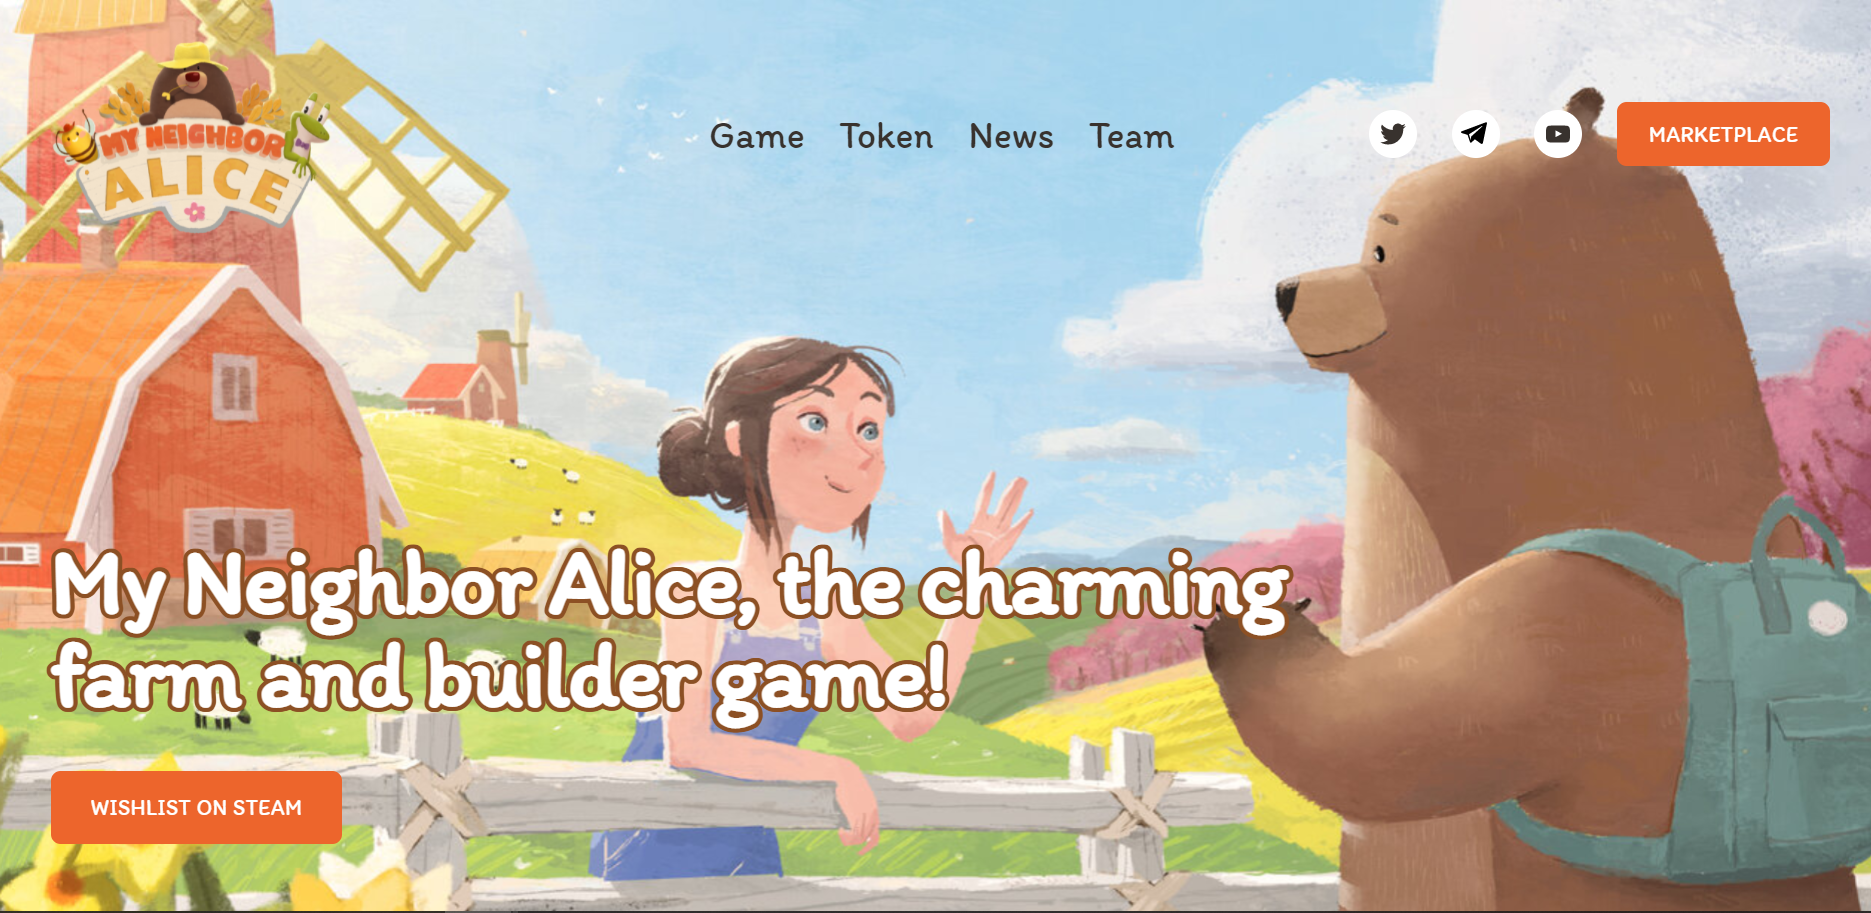 My Neighbor Alice is a blockchain-based game